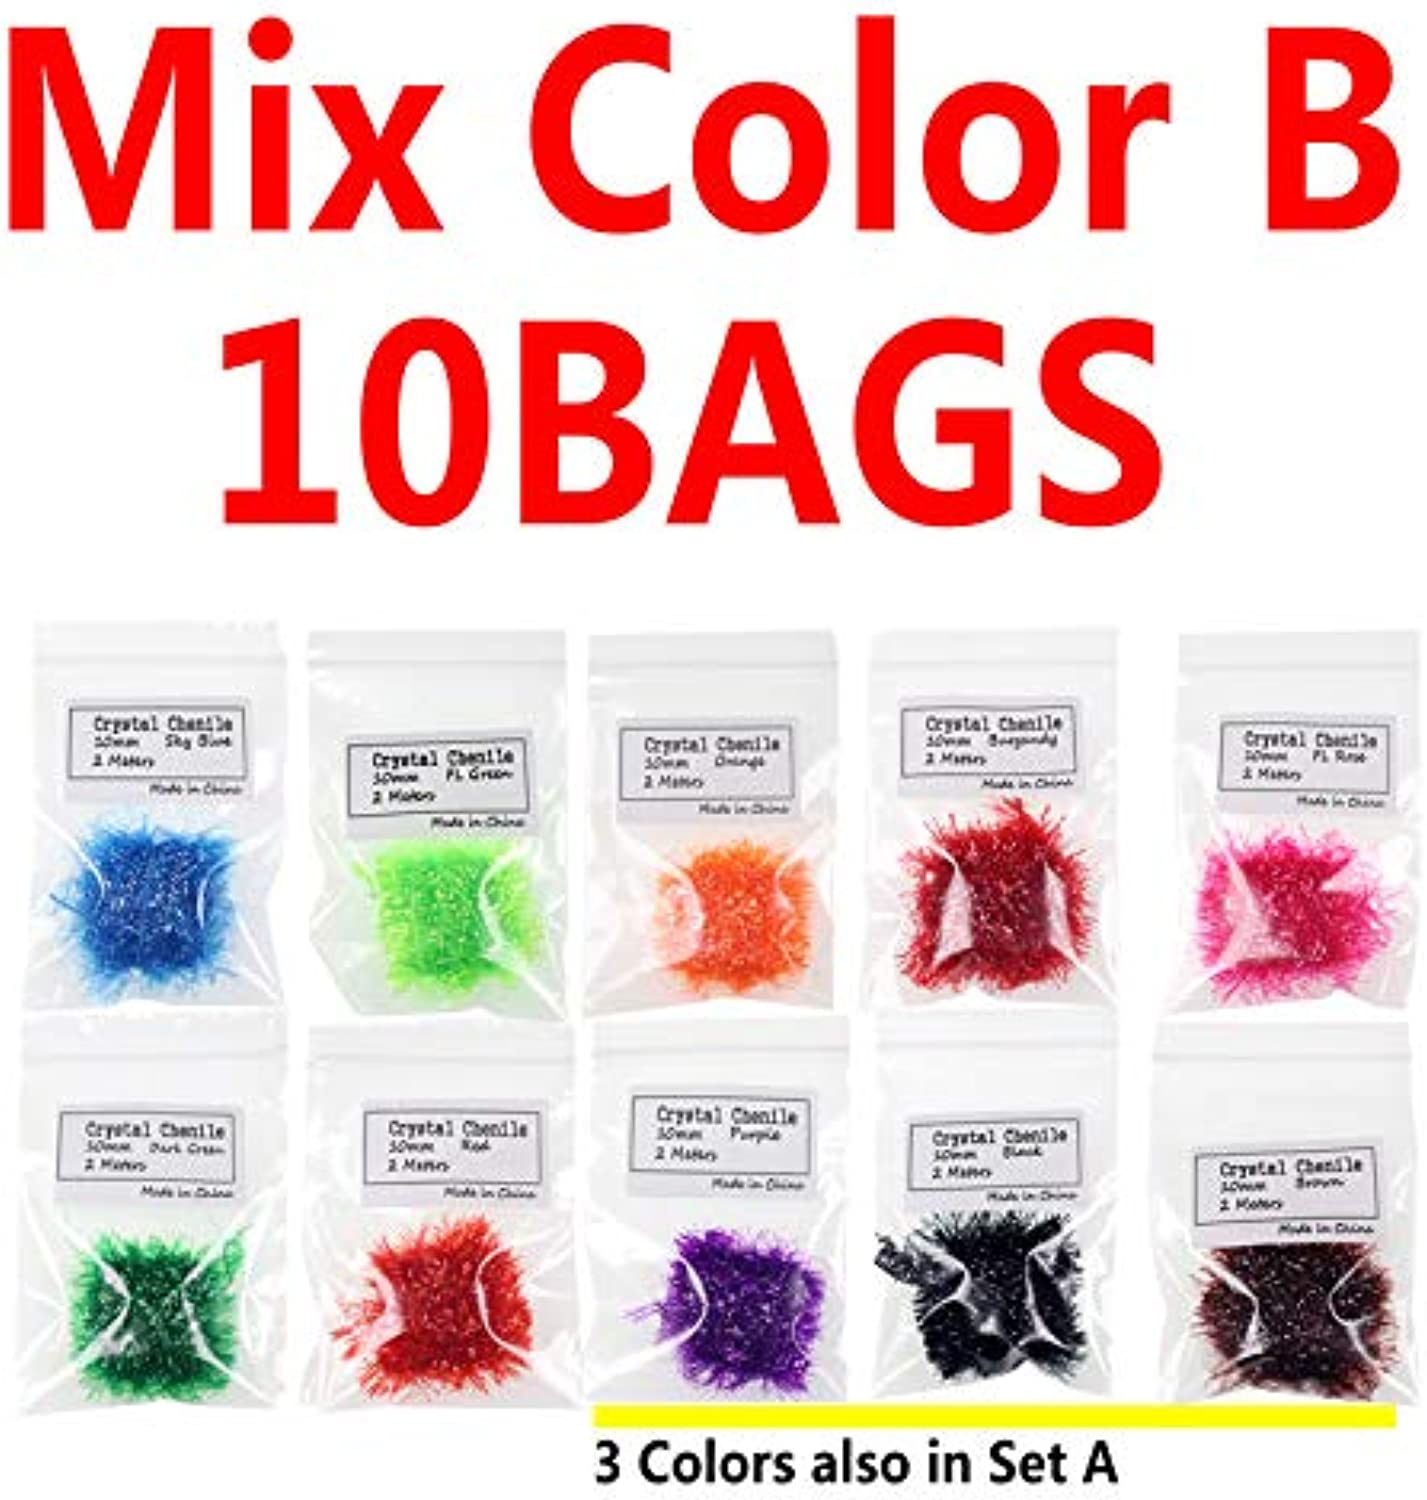 Generic 10PACKS 10mm Fly Tying Material Wide Crystal Flash Chenille Hackle for Streamer Salmon Egg 10bags B